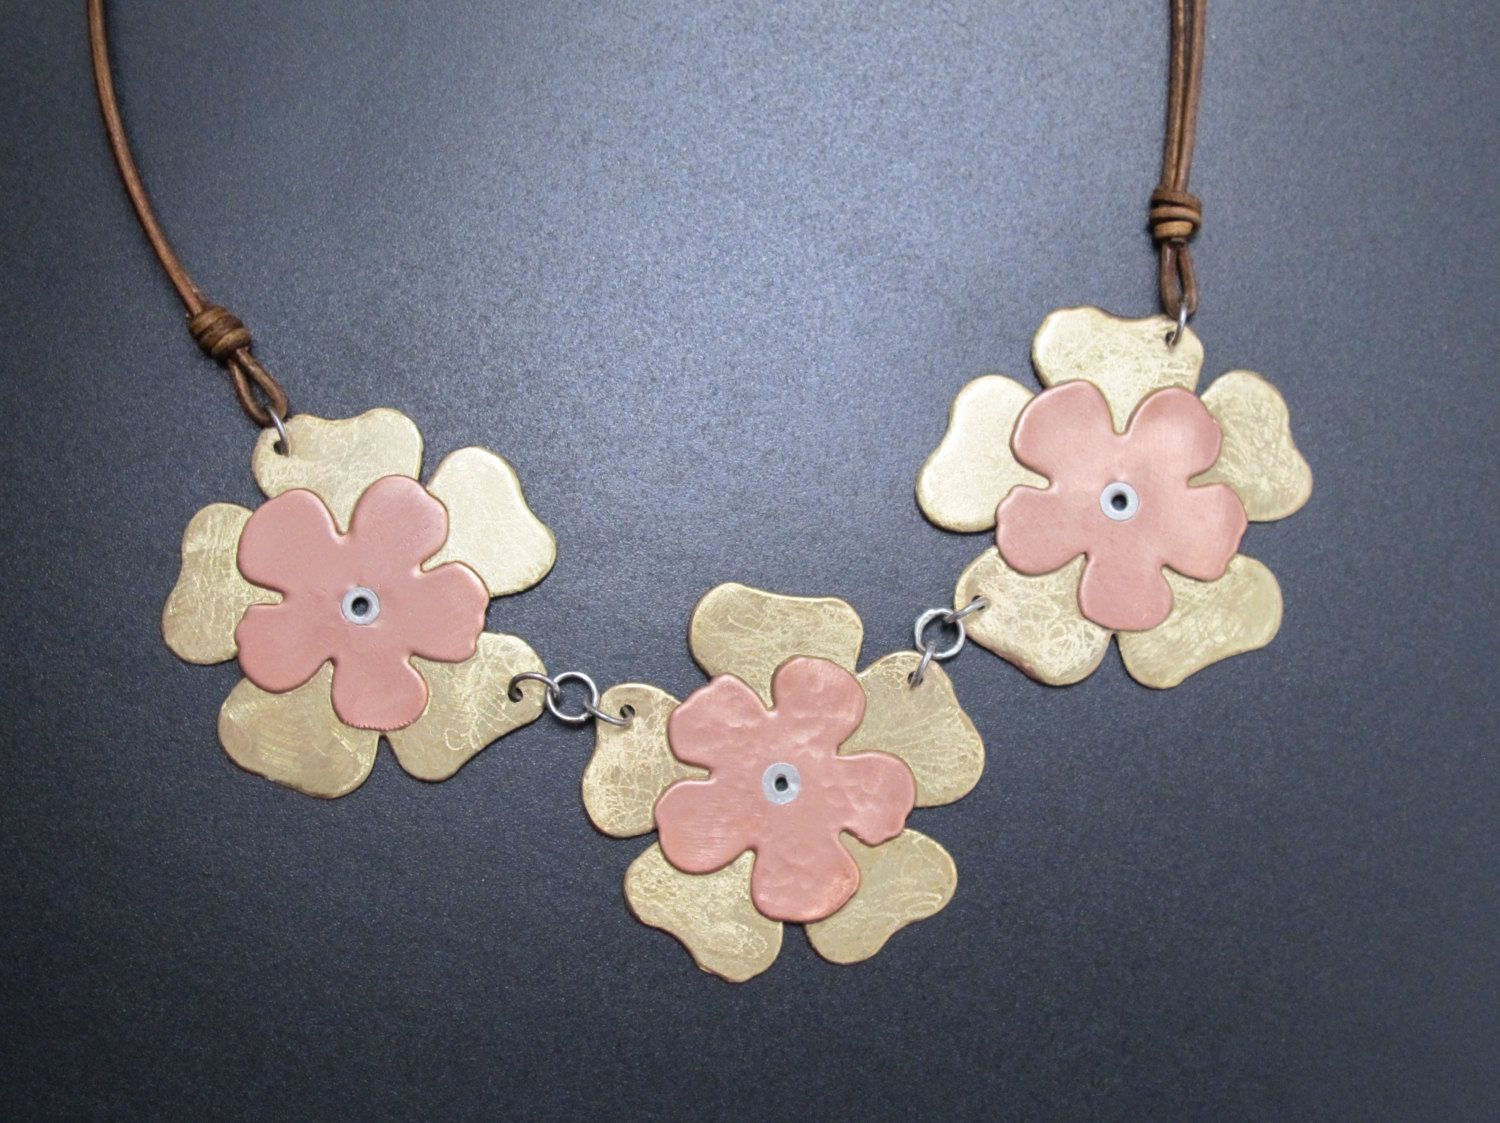 my product com flower myposhshop shop posh necklace by notonthehighstreet original metal statement